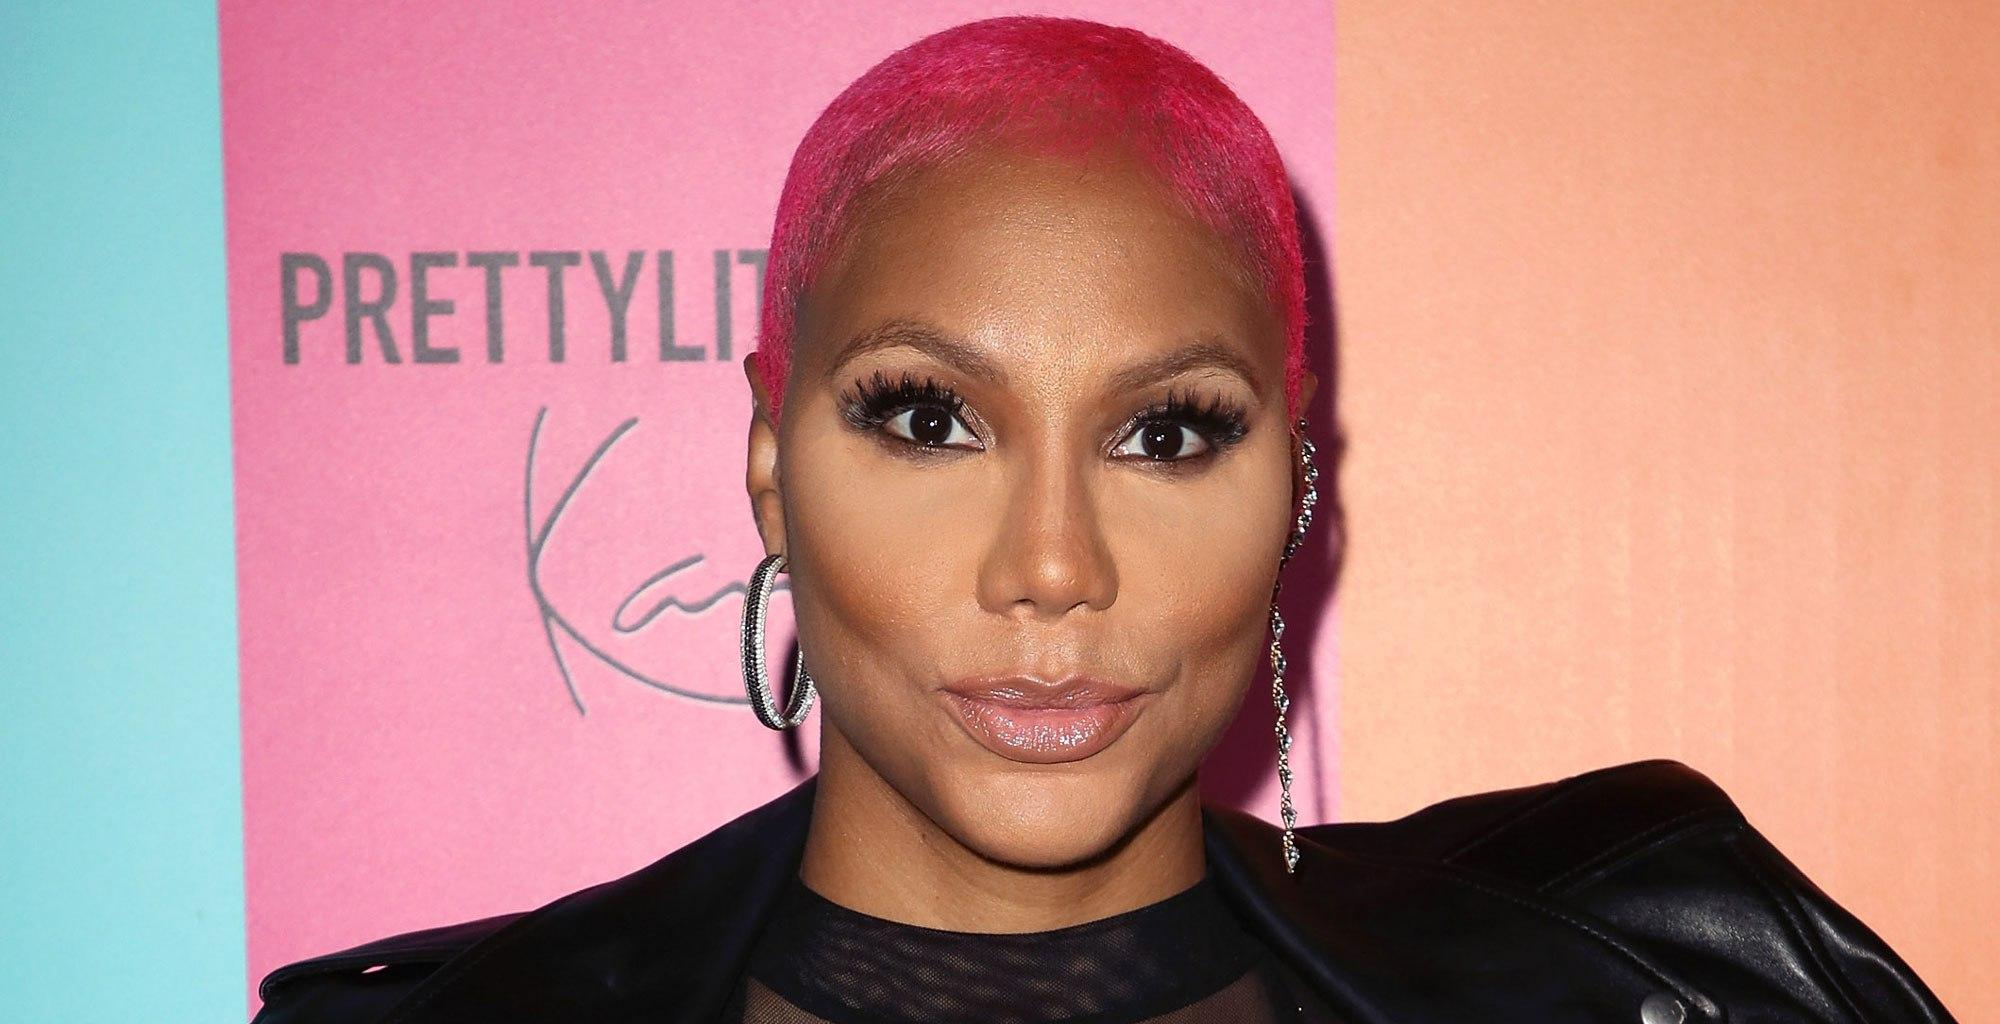 Tamar Braxton's Fans Cannot Wait To See Her On Celebrity Big Brother On CBS - They Defend Her From Haters Who Claim She Only Seeks Attention